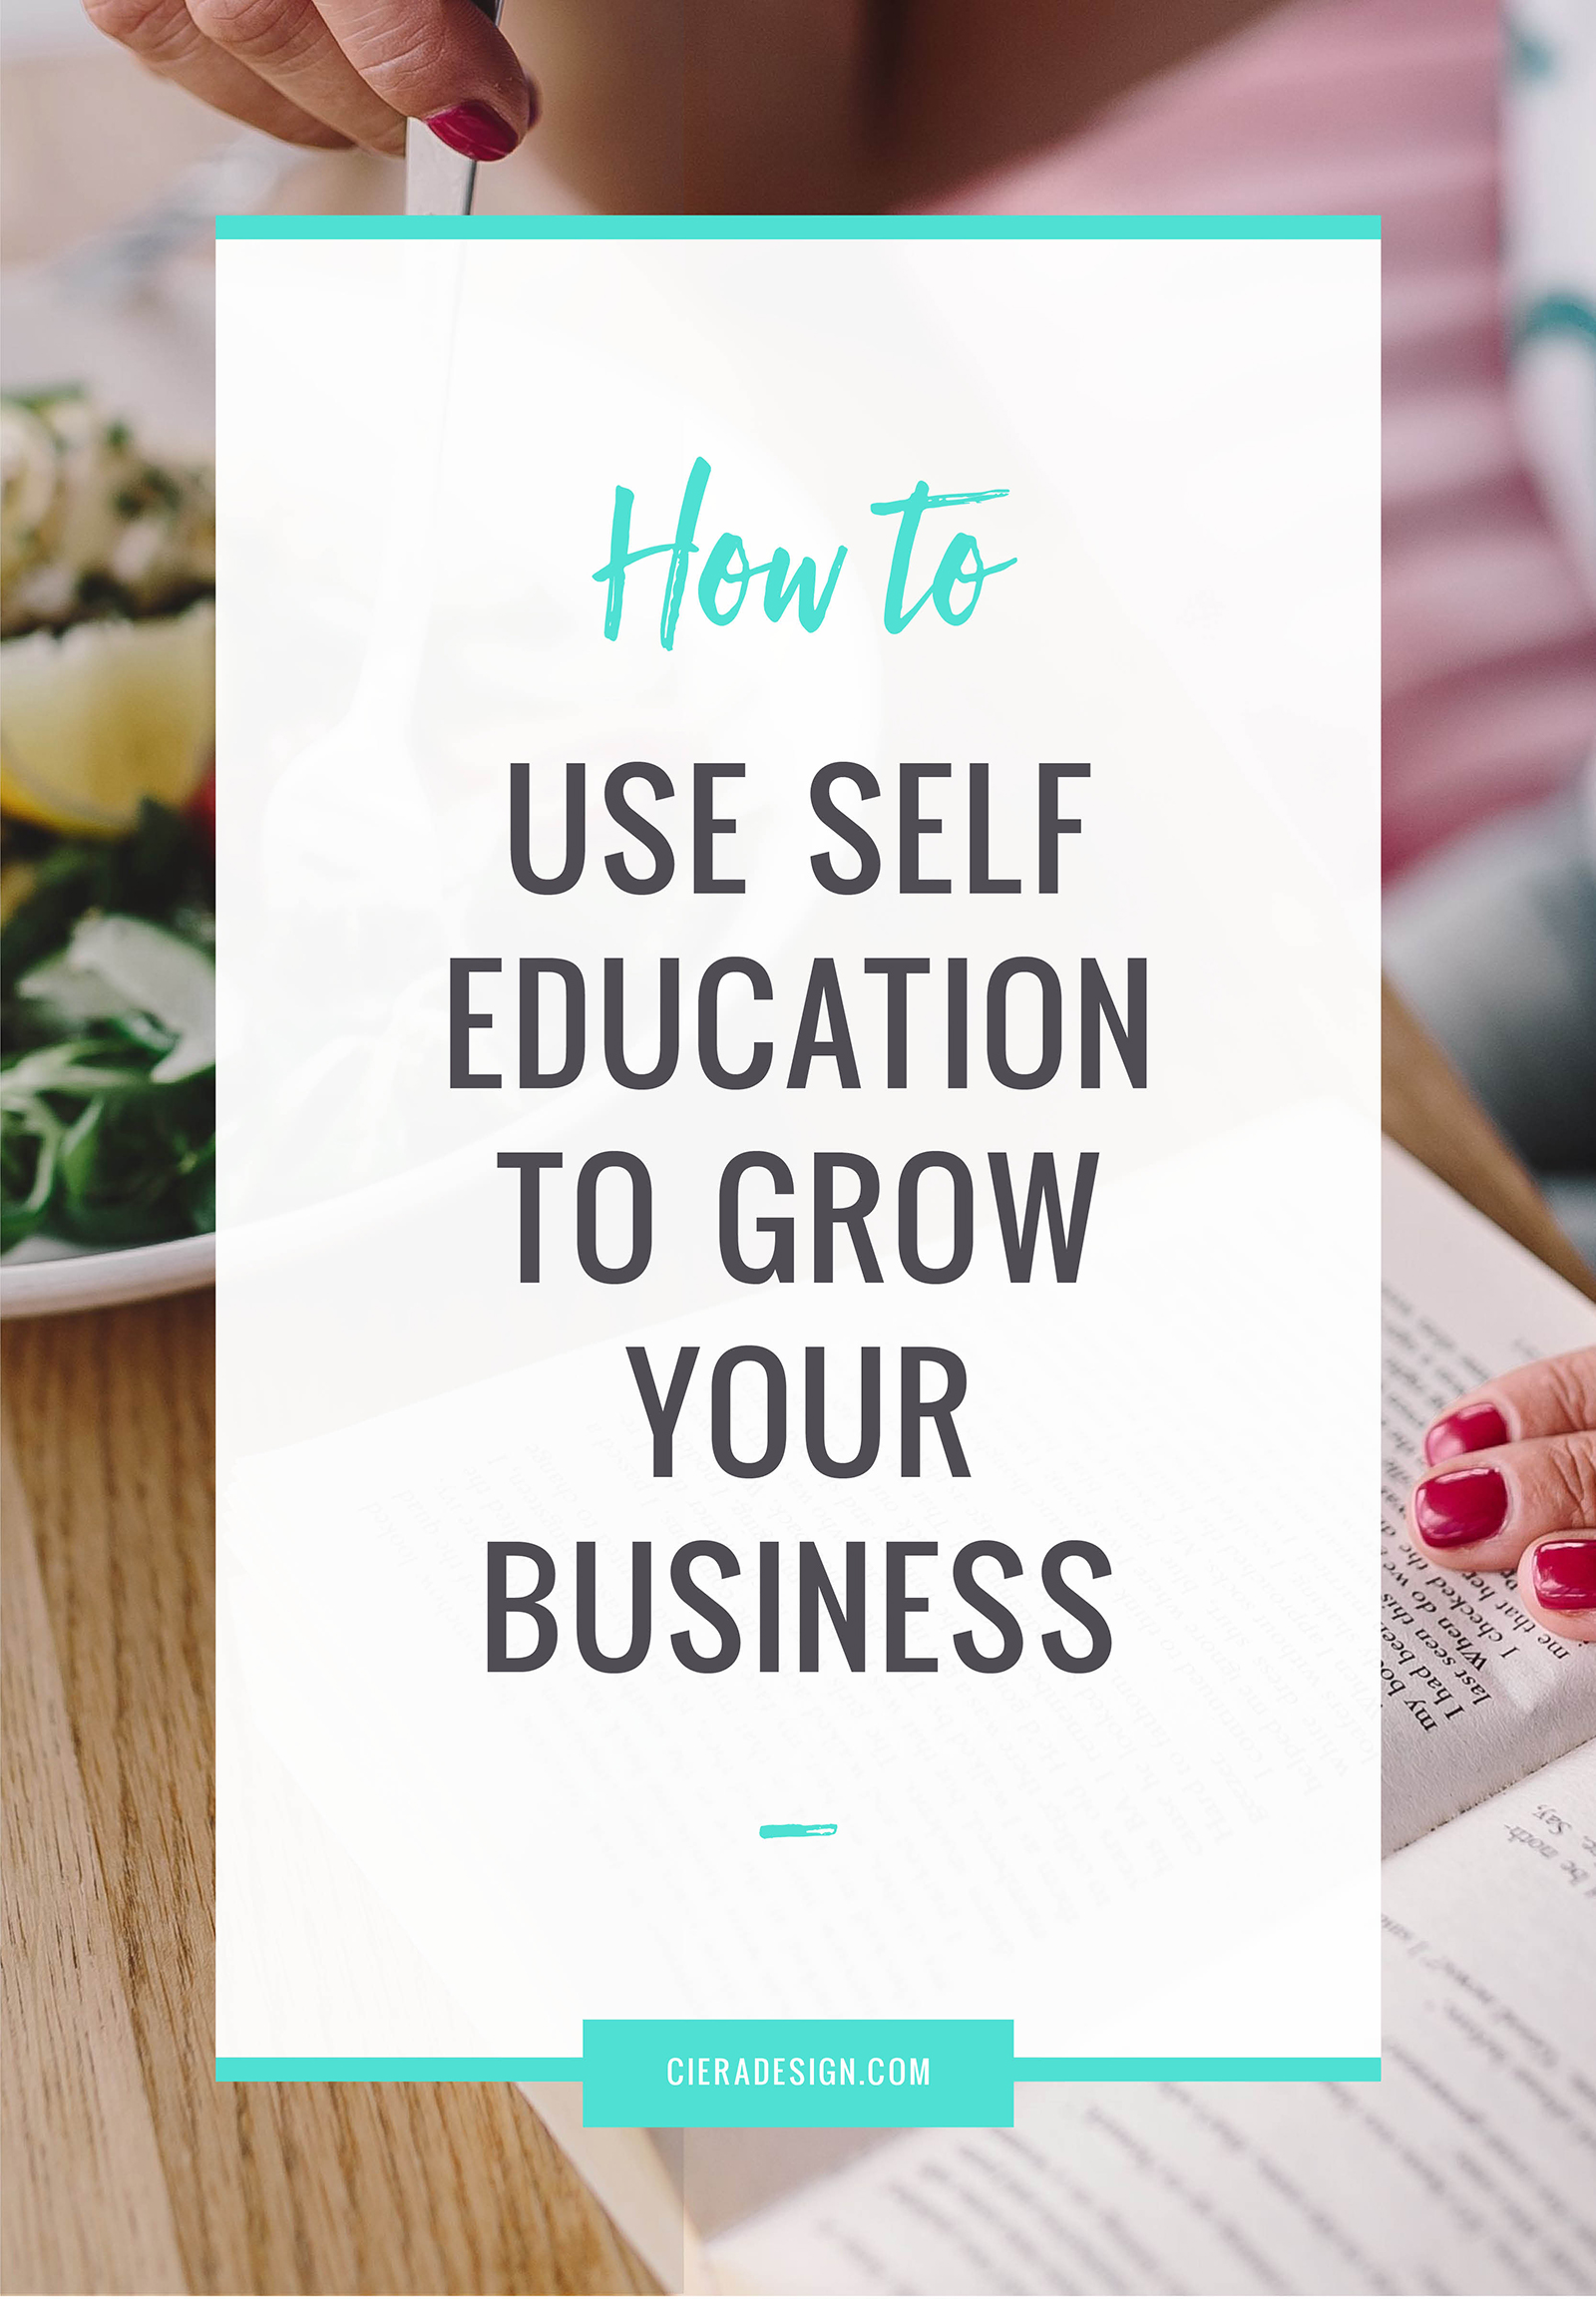 If you are keen on developing yourself in one way or another, either for your benefit or for the business, here are some ways to help.